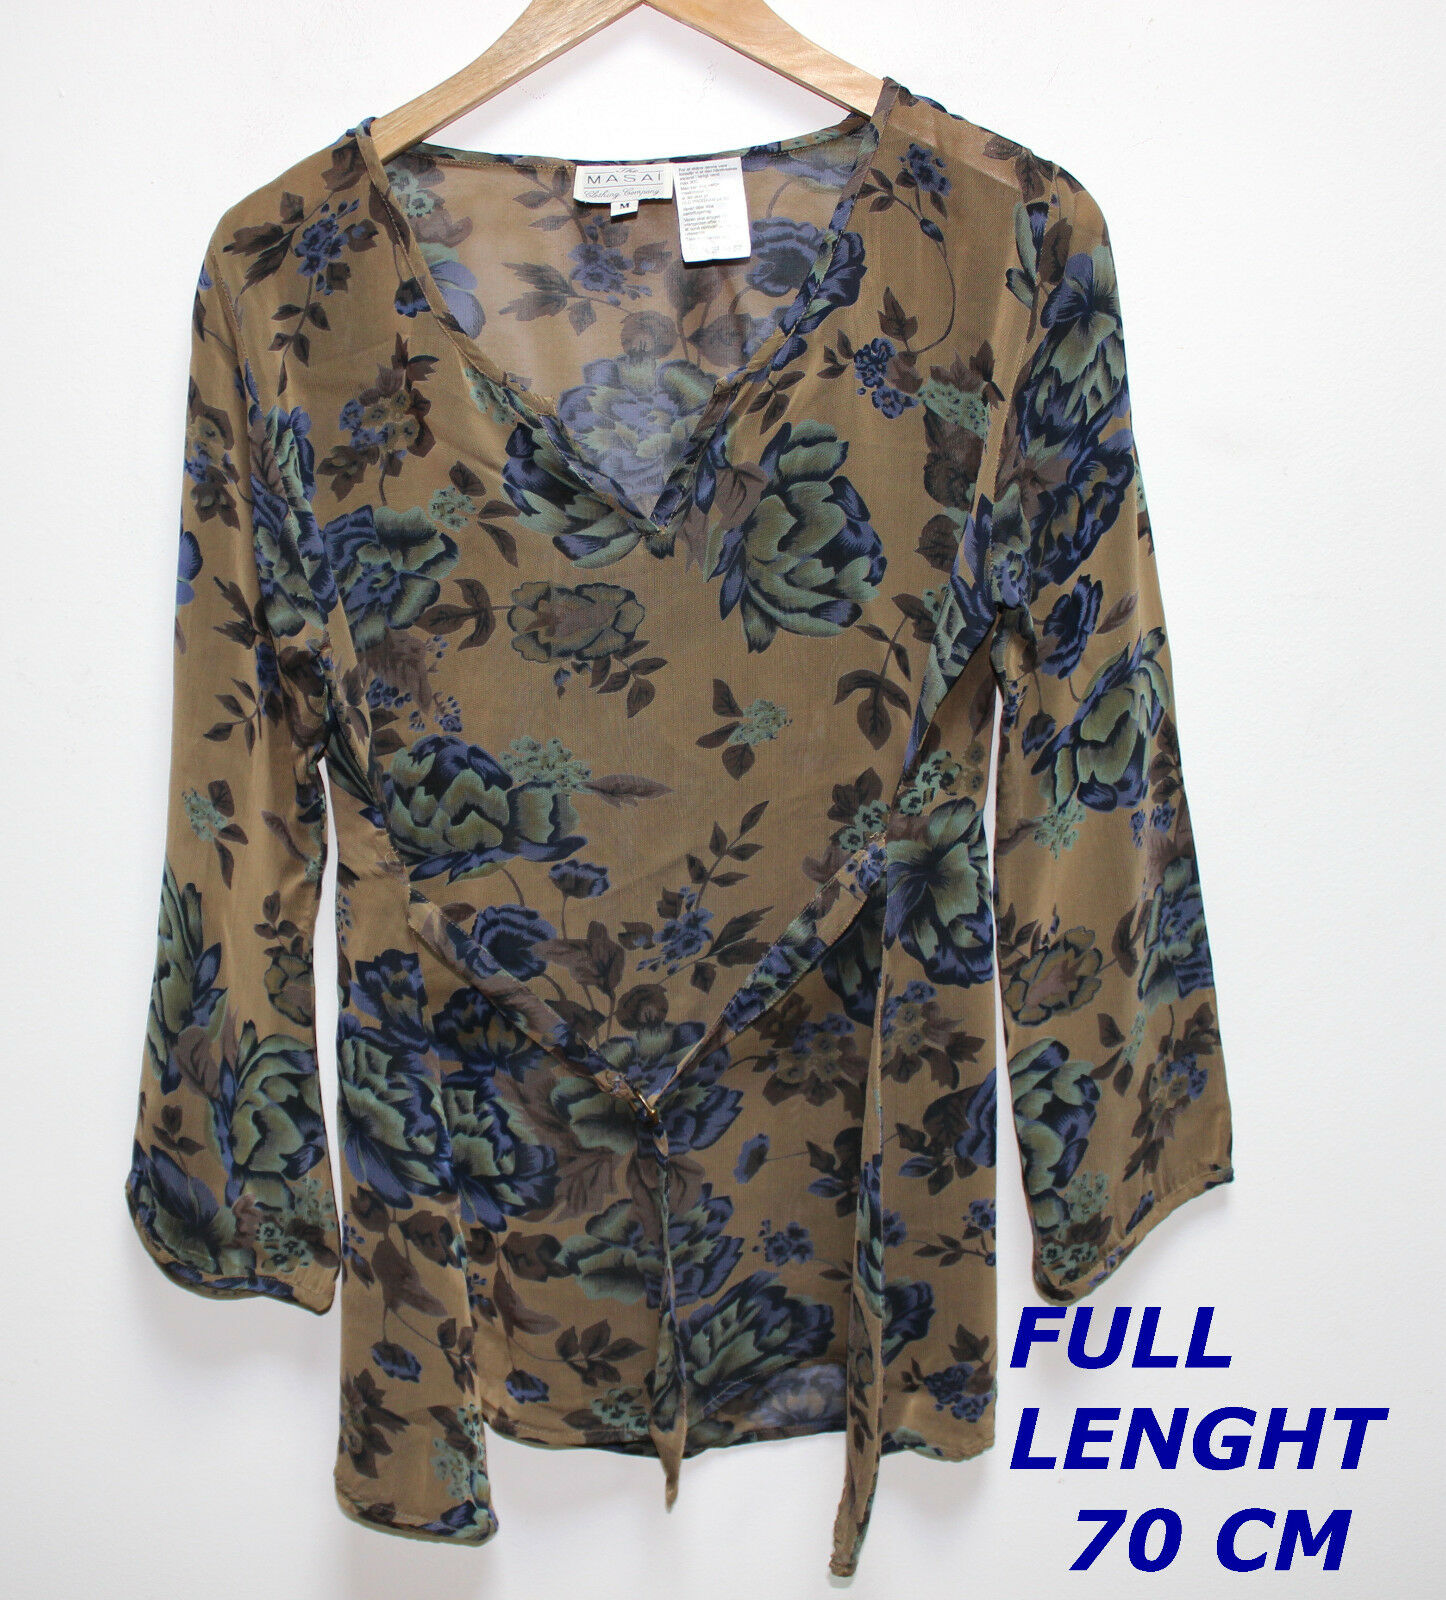 THE MASAI CLOTHING CO  LADY WOMAN BLOUSE SHIRT LONG SLEEVE MARKED SIZE M FLORAL